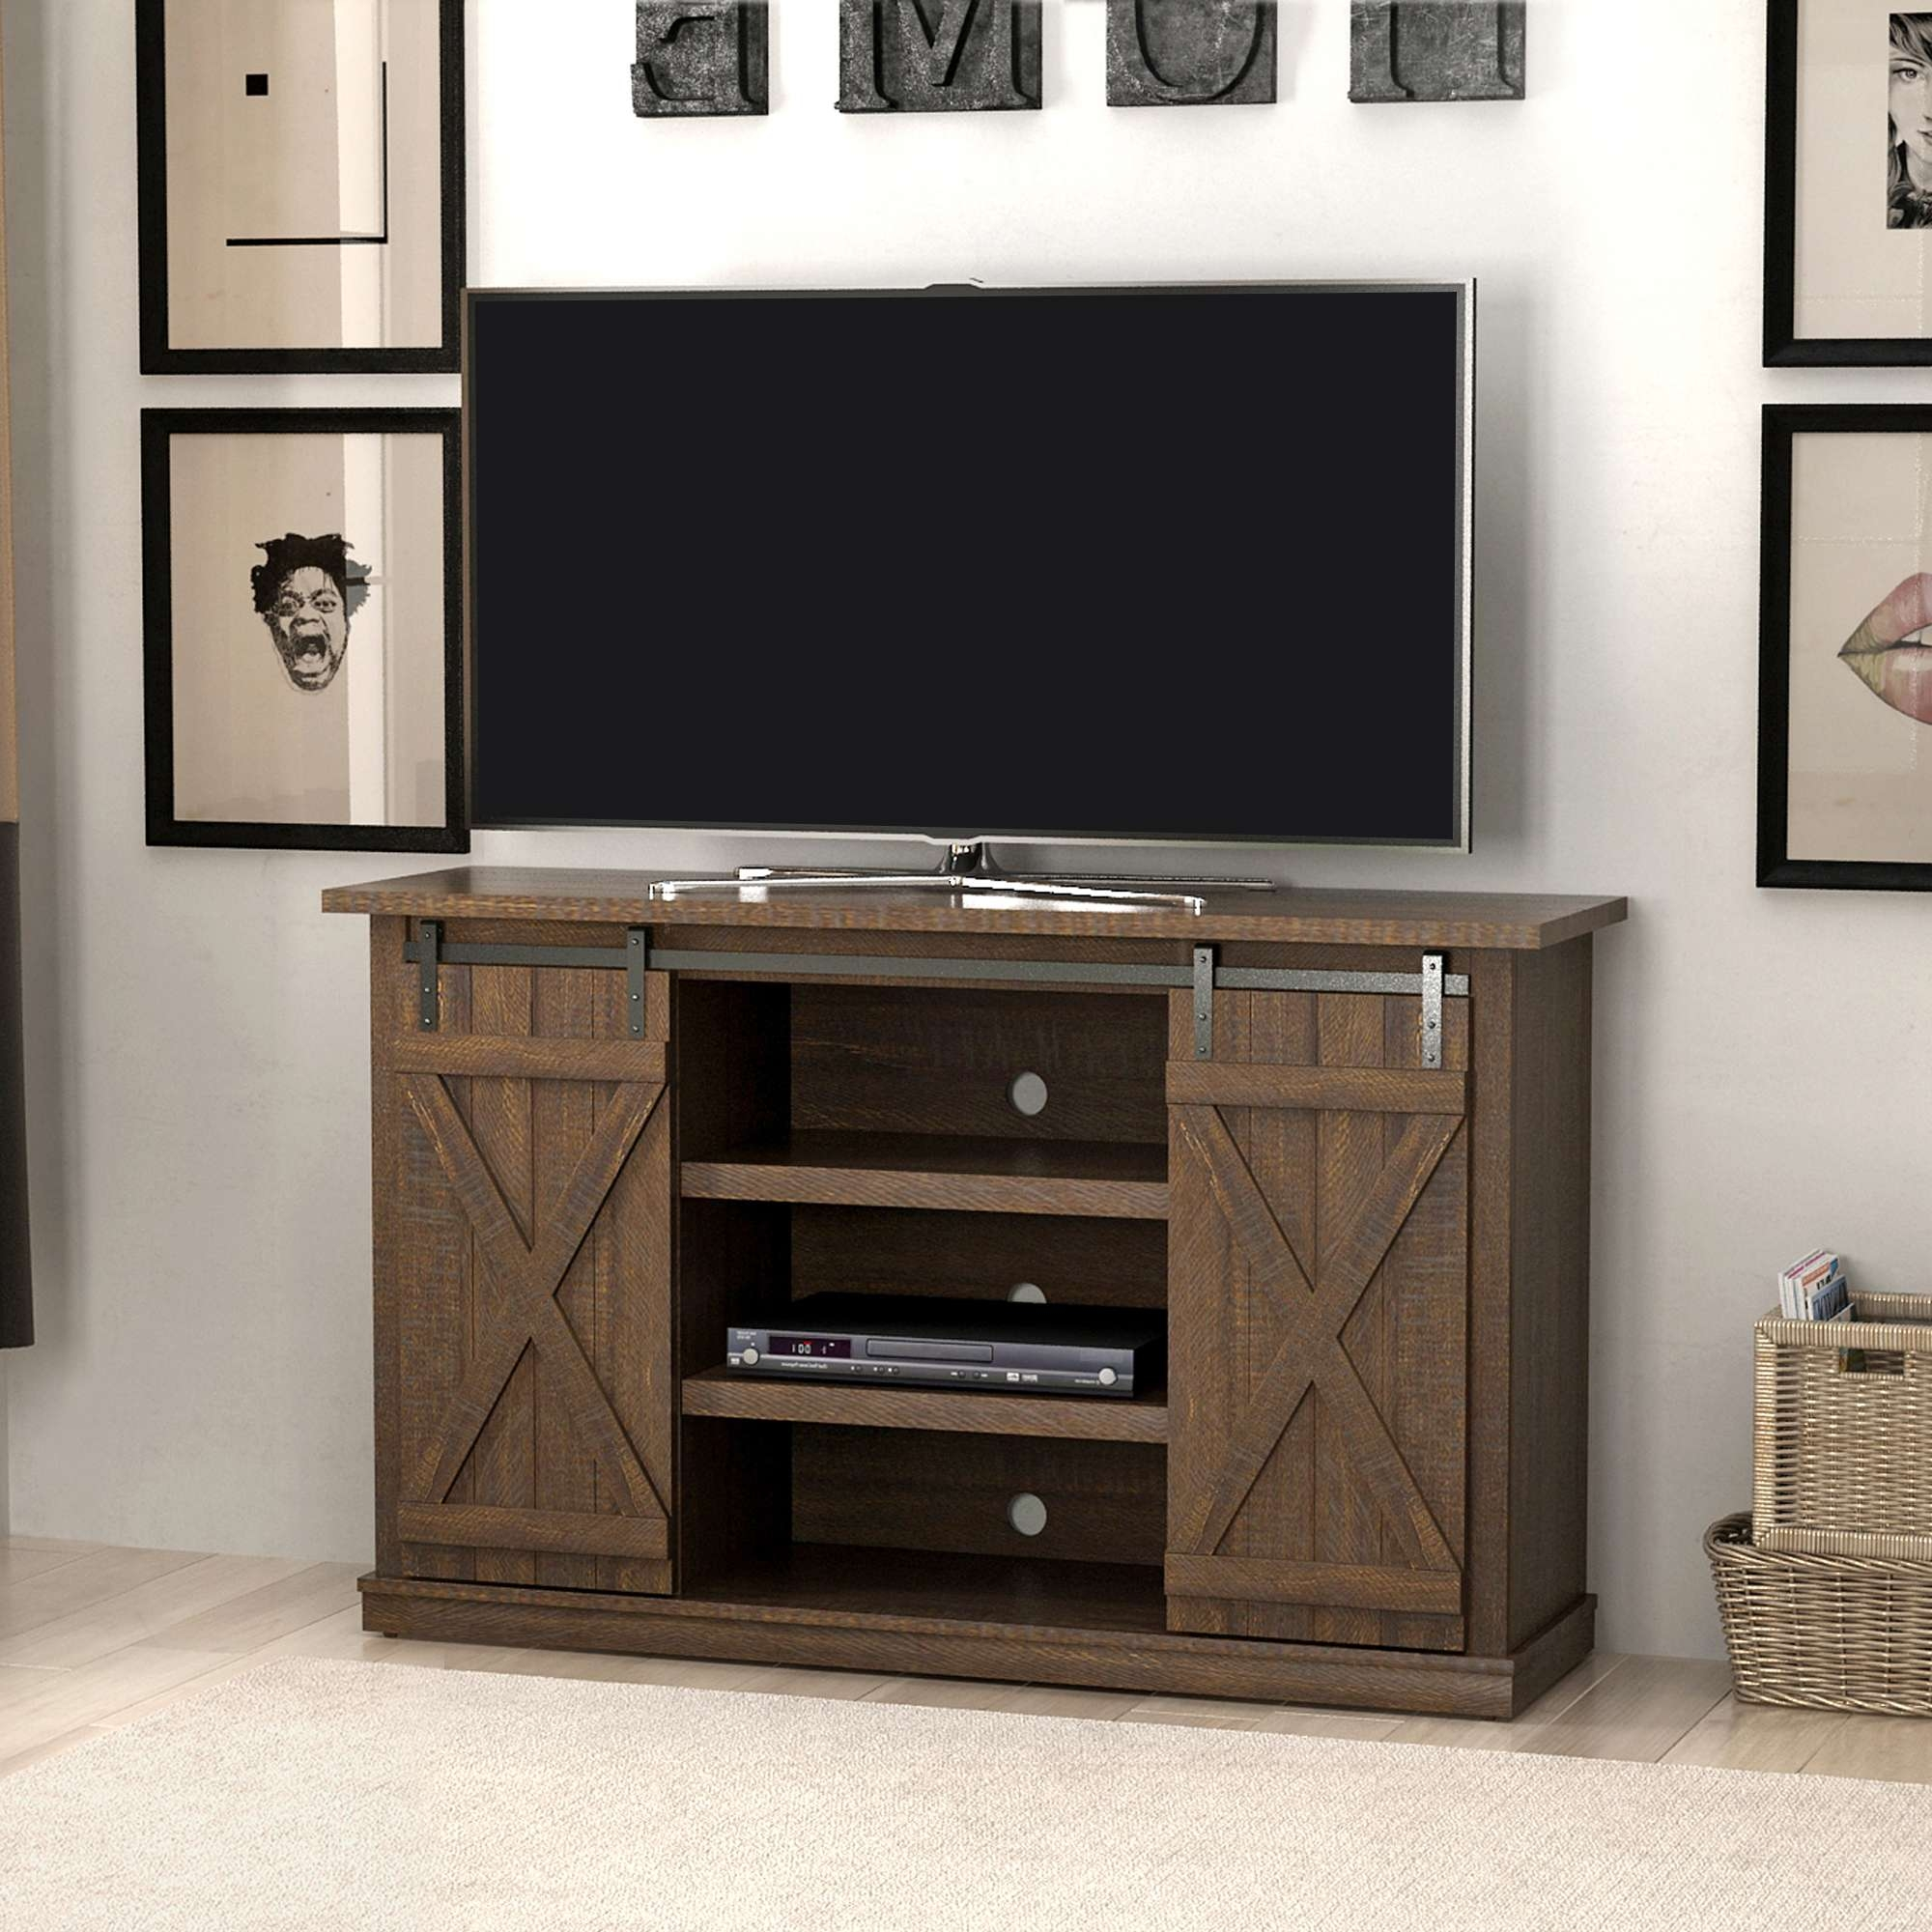 Tv Stands – Walmart Throughout Wooden Tv Stands For 50 Inch Tv (View 2 of 15)